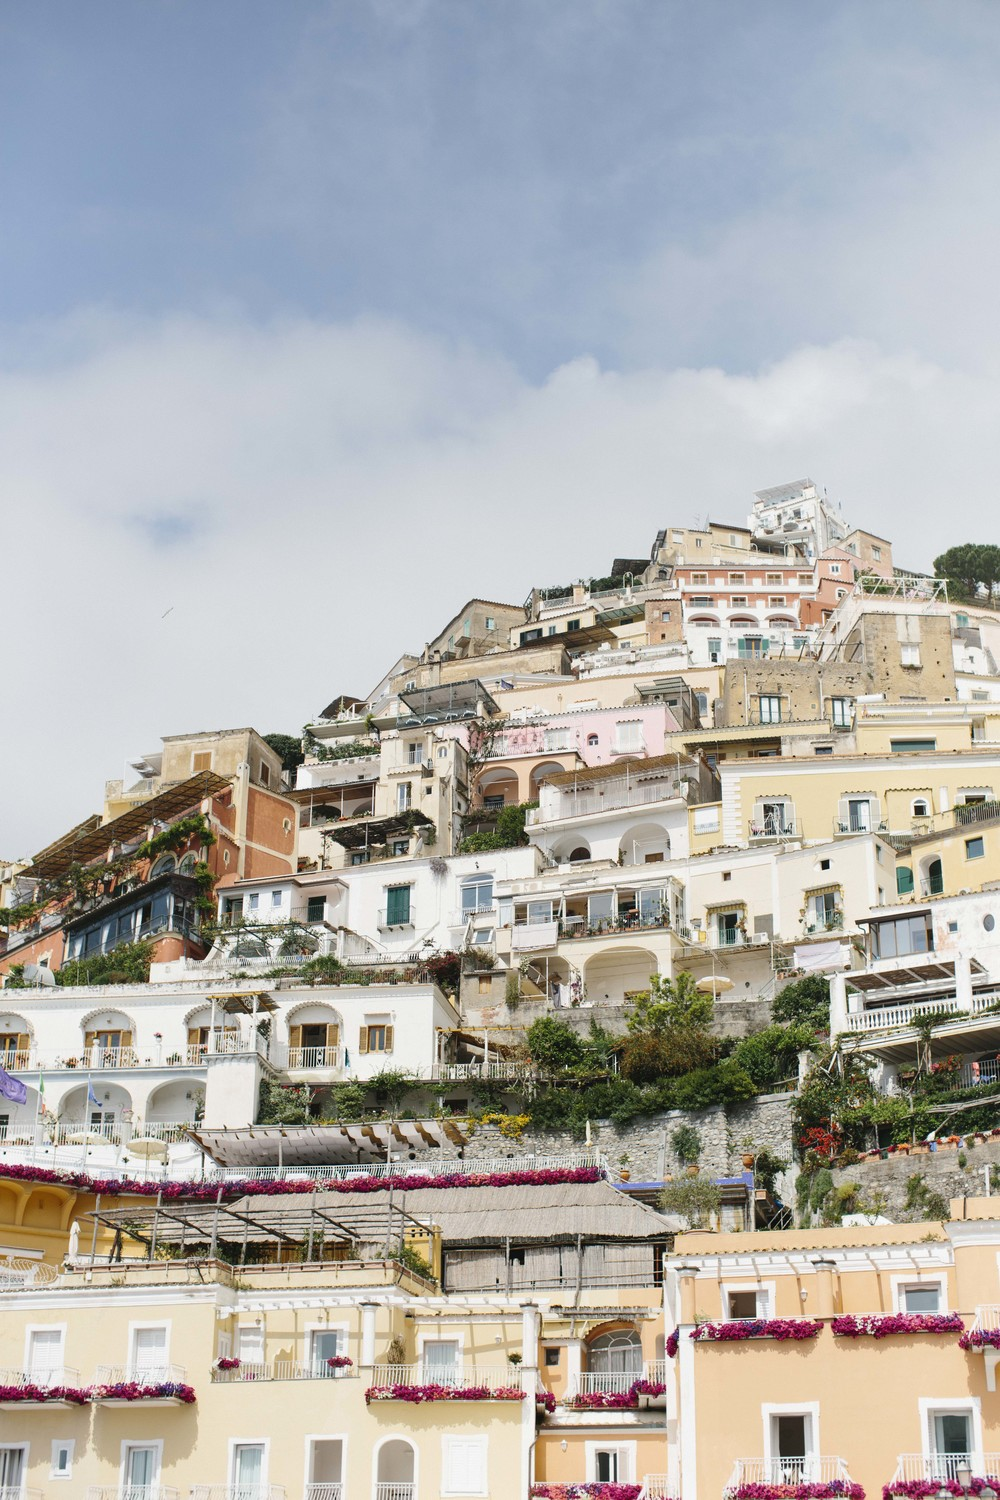 The buildings and houses of the Amalfi Coast are built right into the cliffs. Positano wowed us with its beautiful colors.